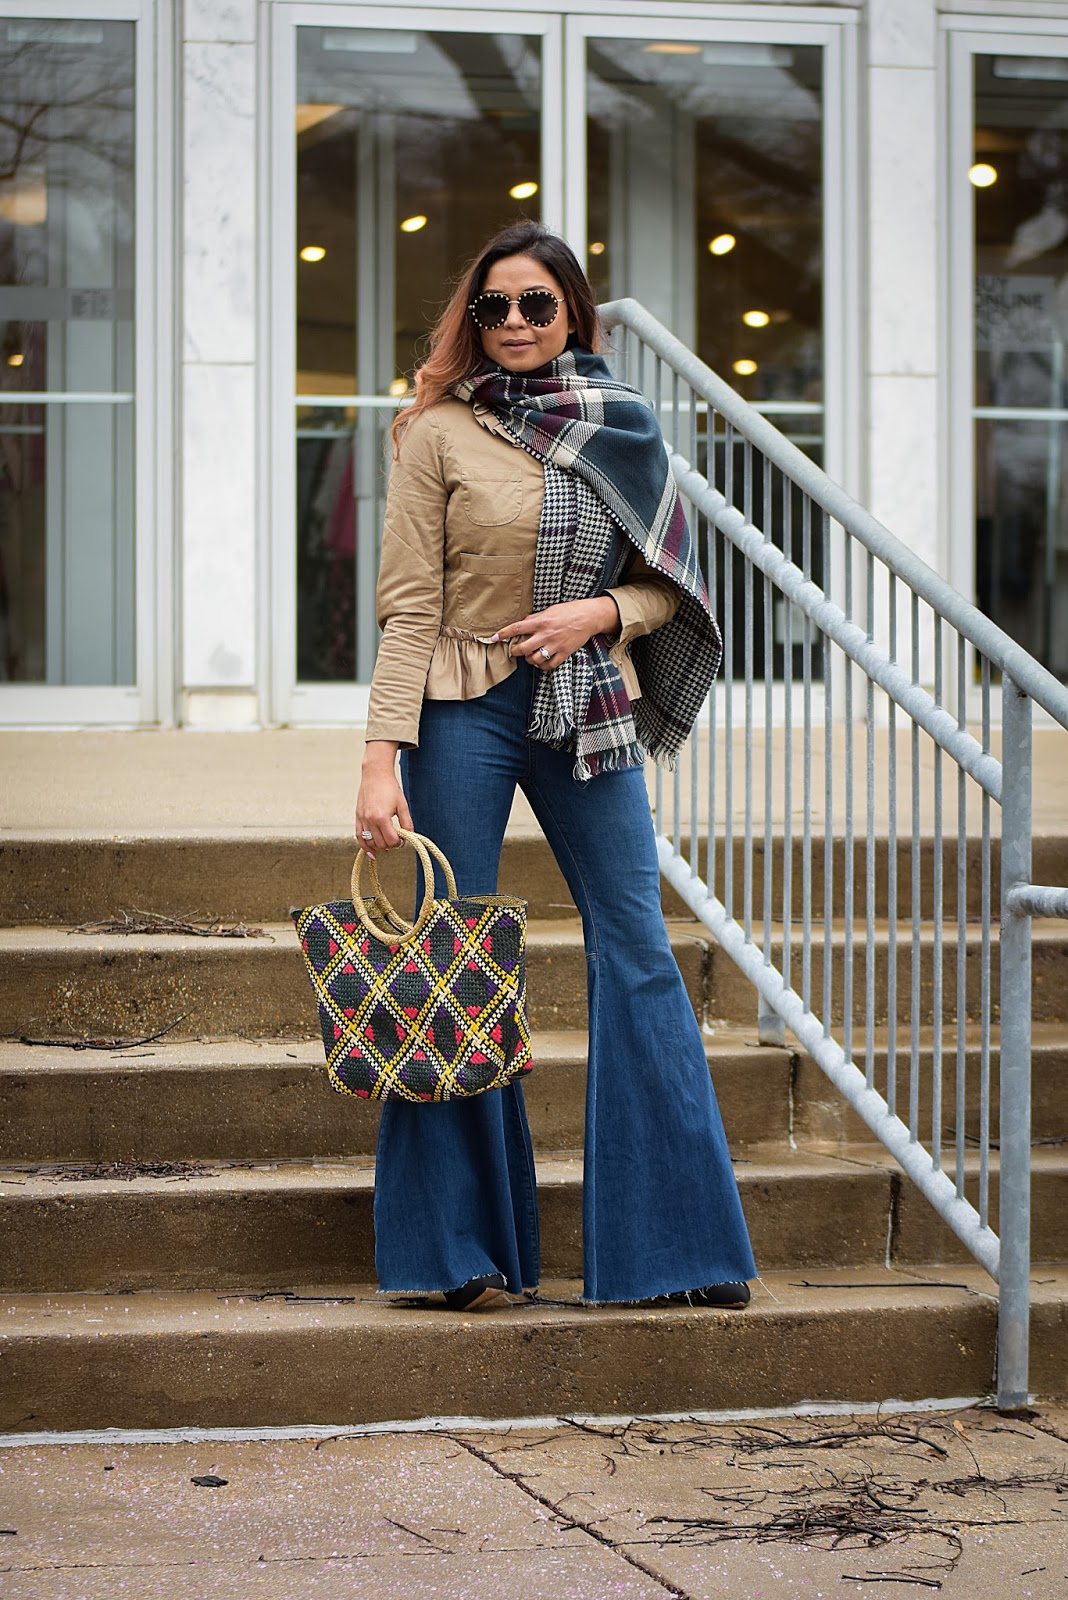 how to wear a plaid scarf, bell bottom jeans, spring style, street style, fashion blogger, style, frill j crew blazer, woven beach bag, myriad musings